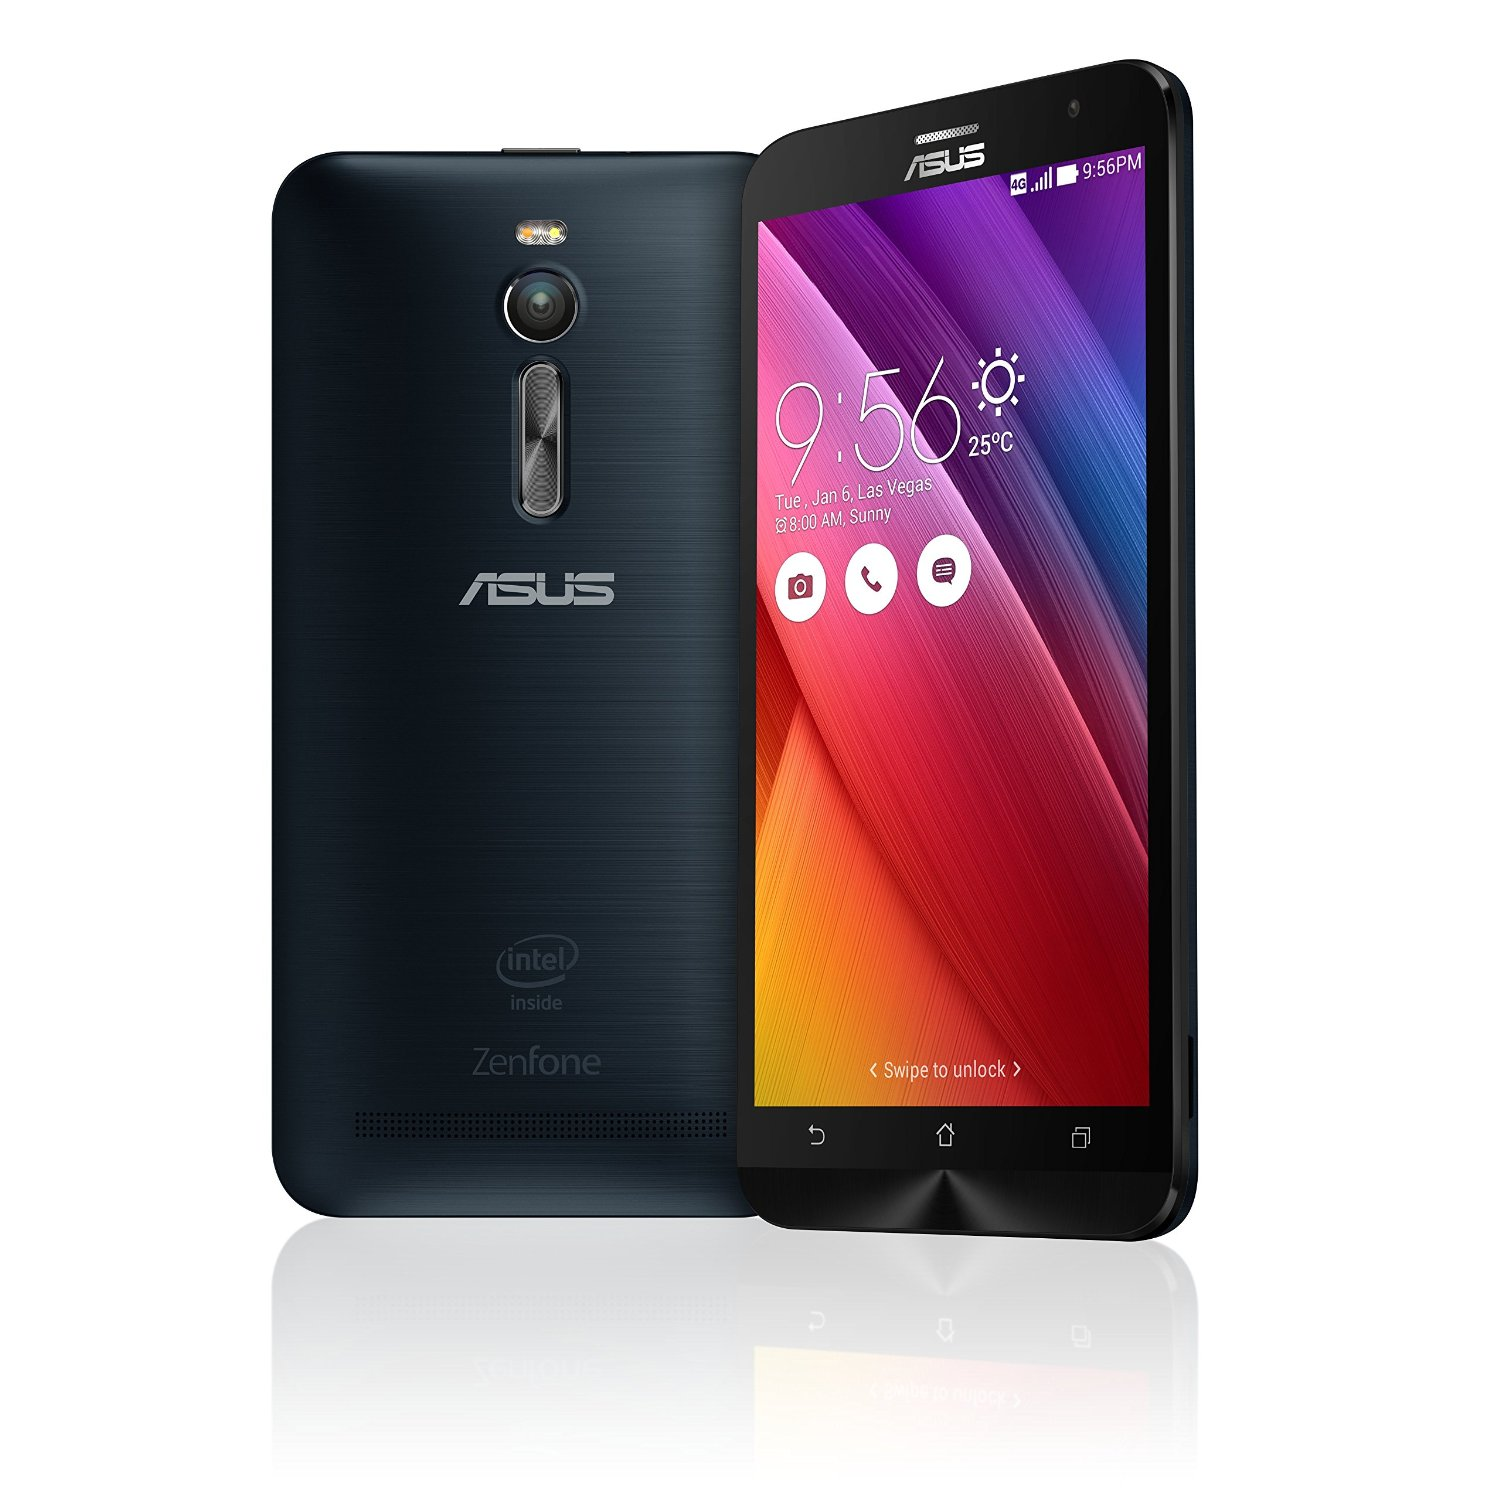 A new ASUS ZenFone 2 model is now available with 16GB ...